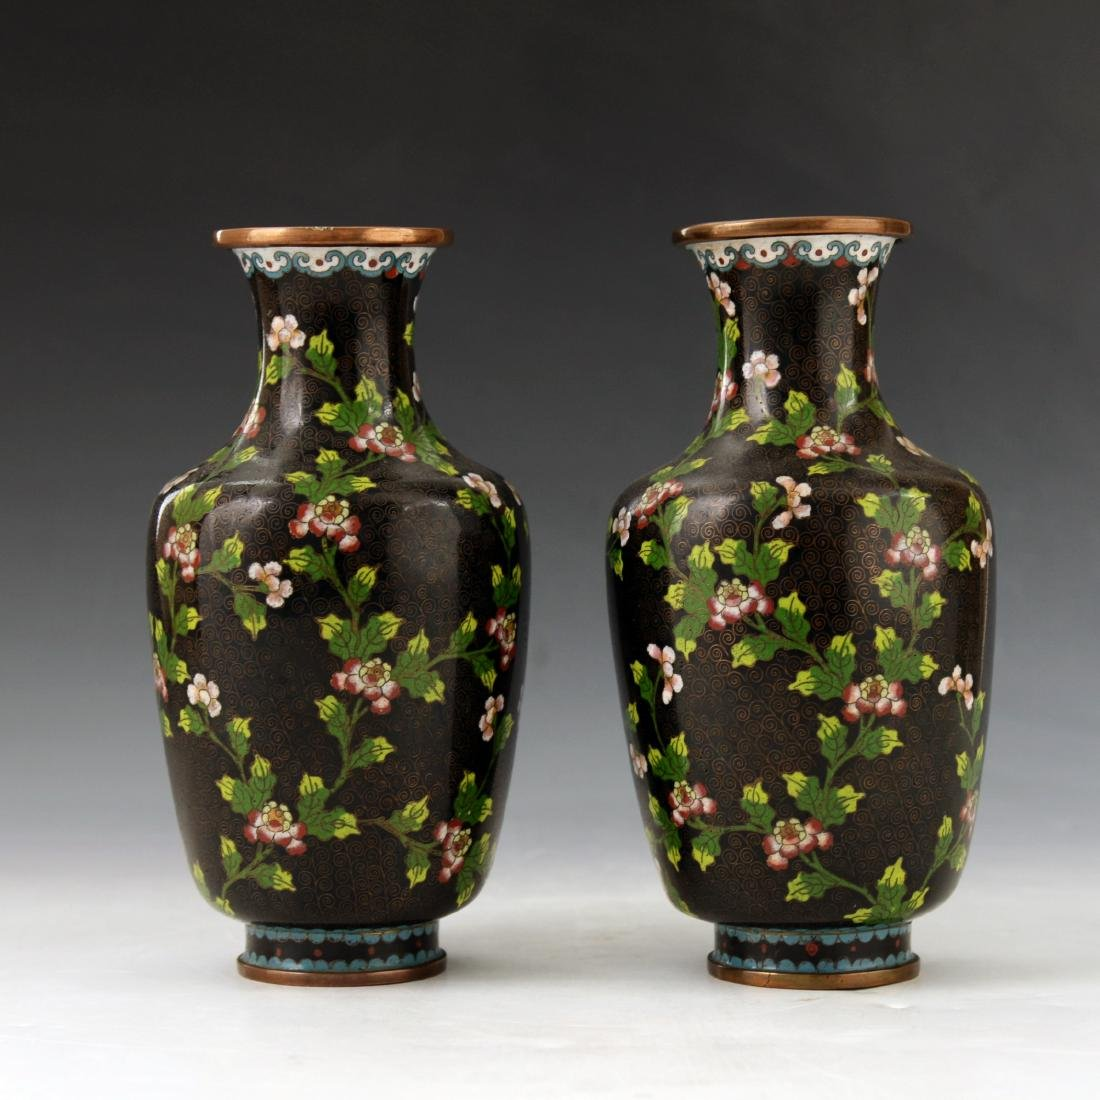 A Pair of Chinese Cloisonne Vase